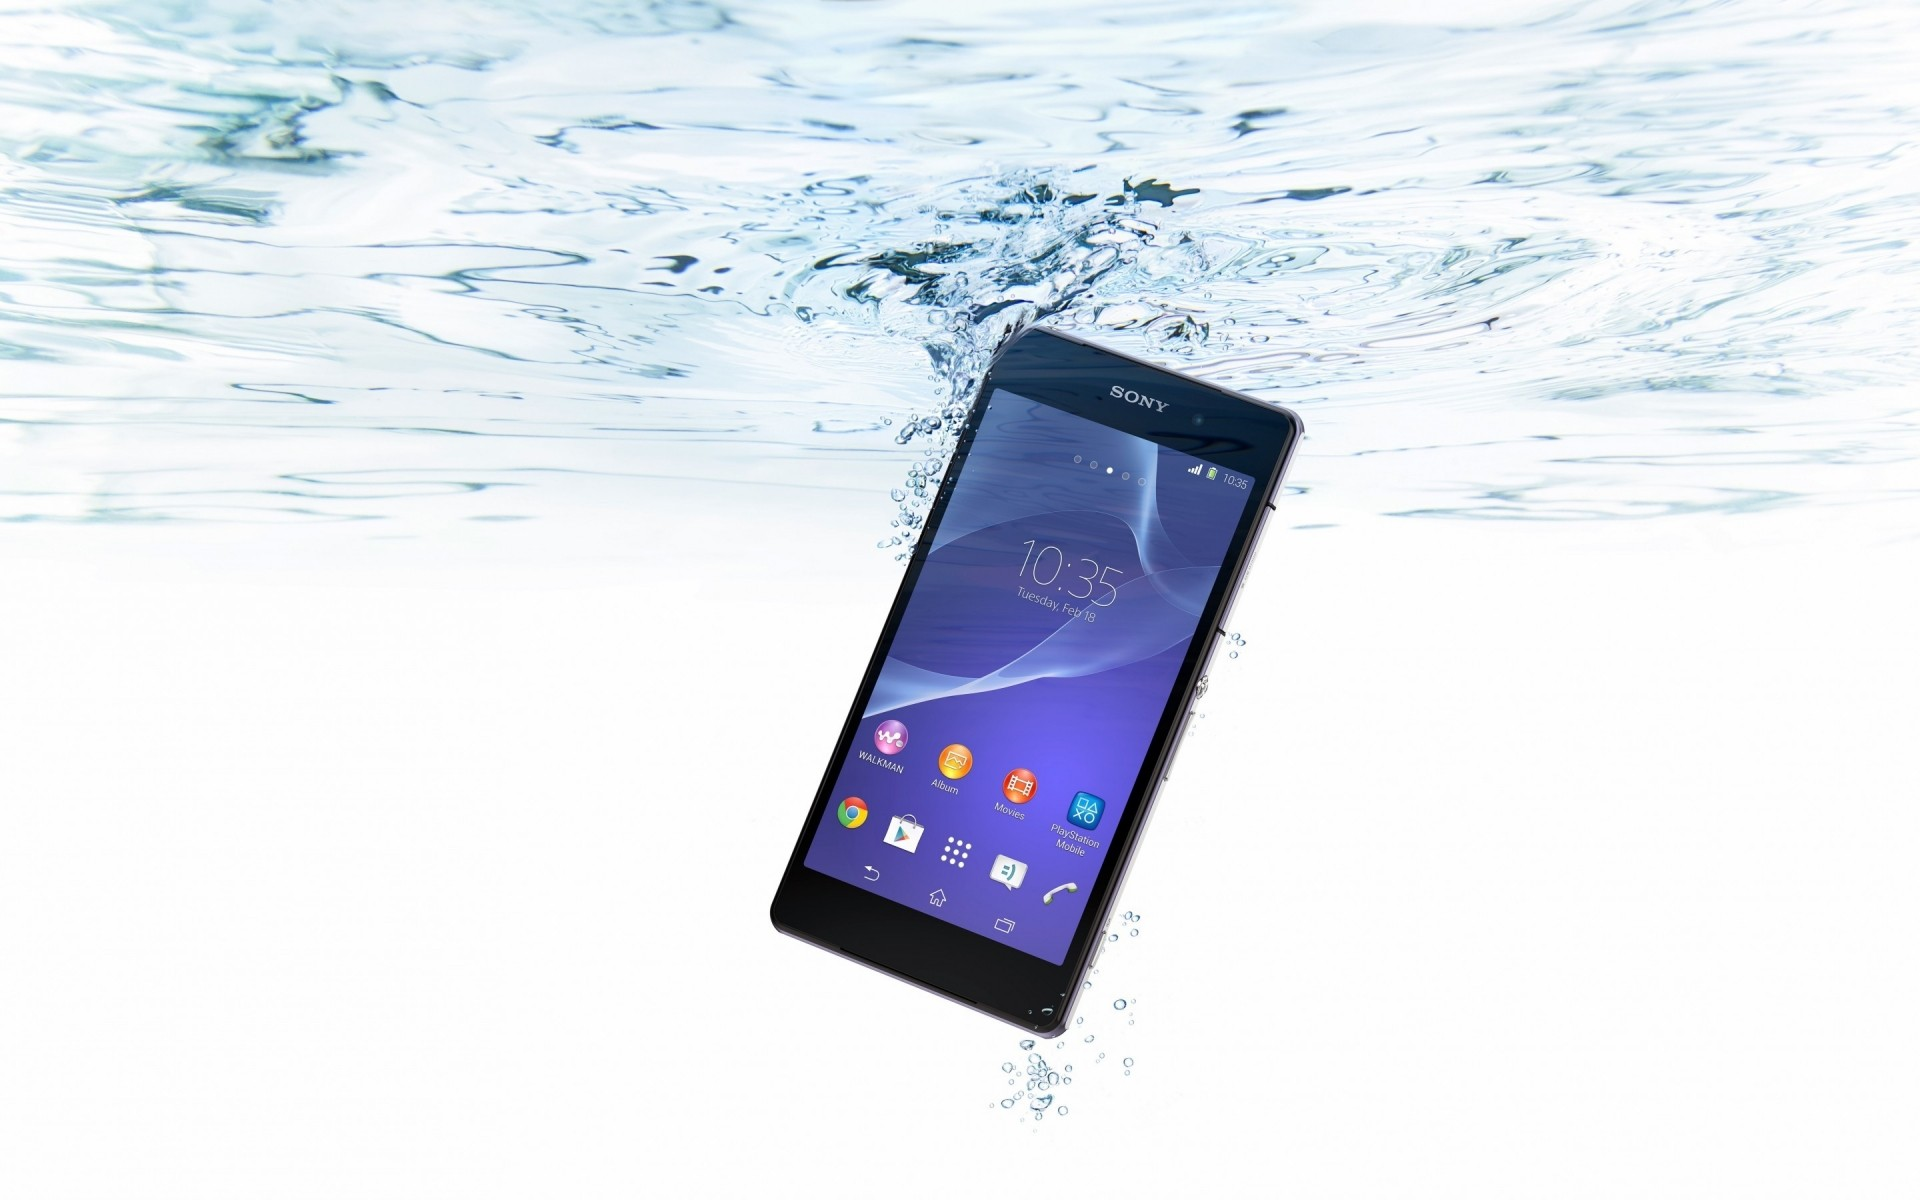 Sony Xperia z2 водонепроницаемый